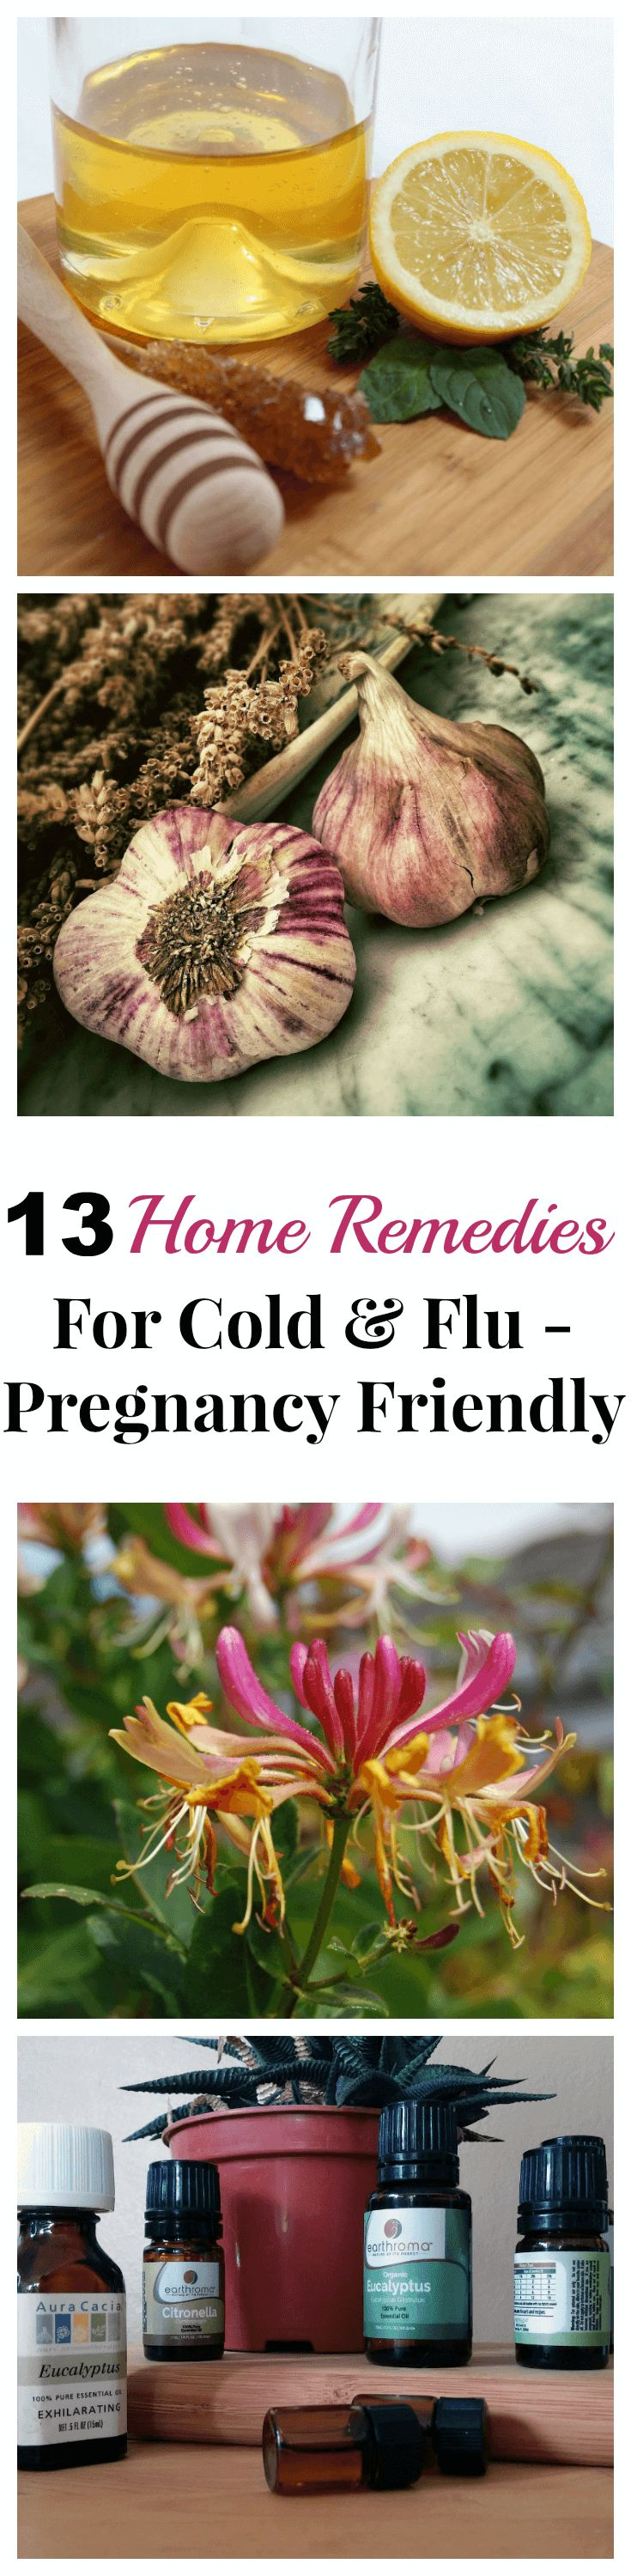 If you're pregnant with a cold or flu, you feel miserable. Most women suffer thinking they can't take anything, but there are medicines and remedies that are safe if used correctly. Always consult your doctor or midwife. It will pass on it's own, but these remedies will ease the symptoms. Click through to find out about the different safe remedies you can take when you have a cold or flu in pregnancy